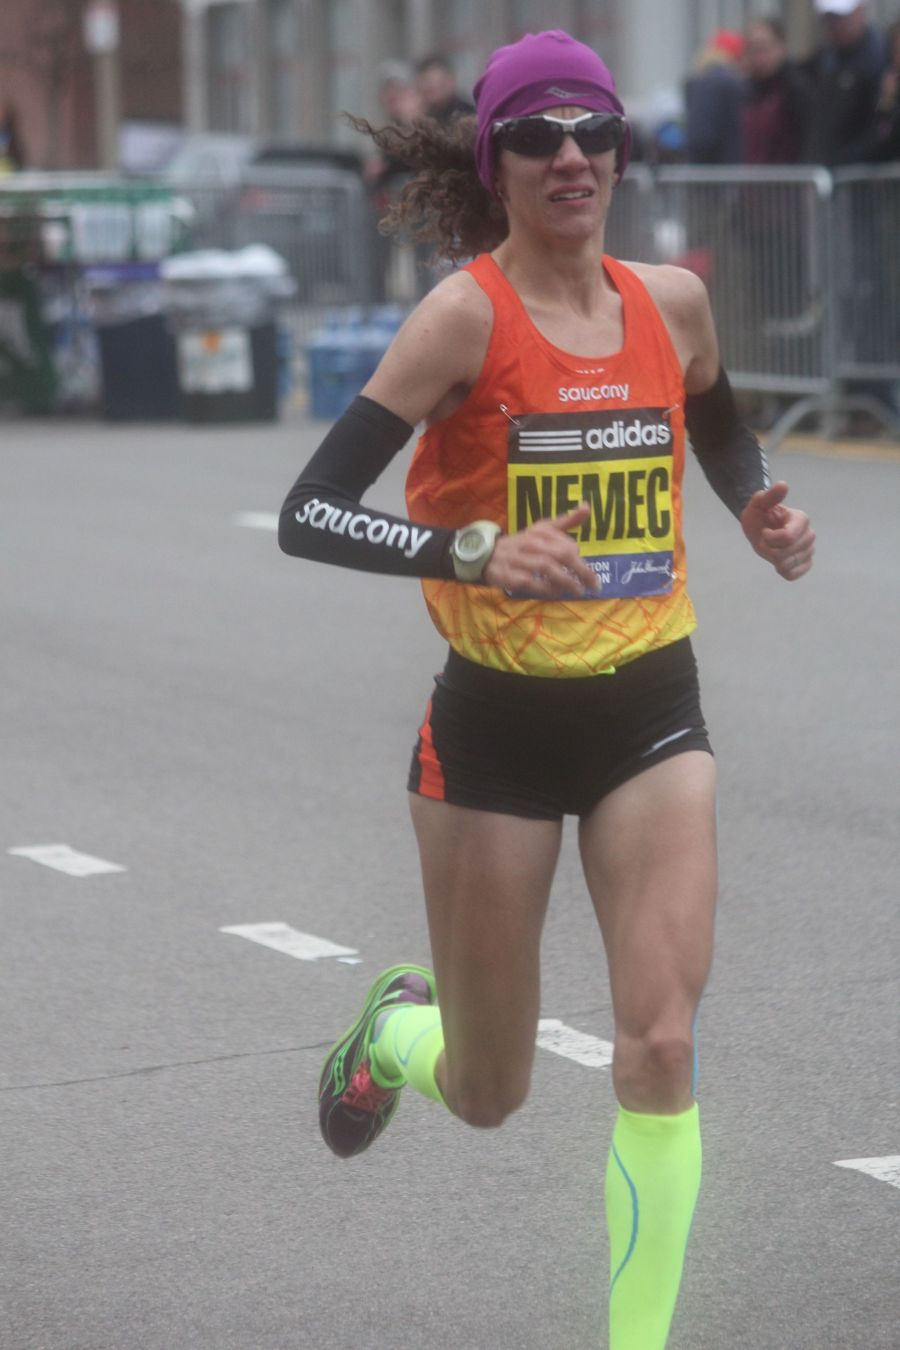 boston marathon april 20 2015 womens elite race lisa nemec 2